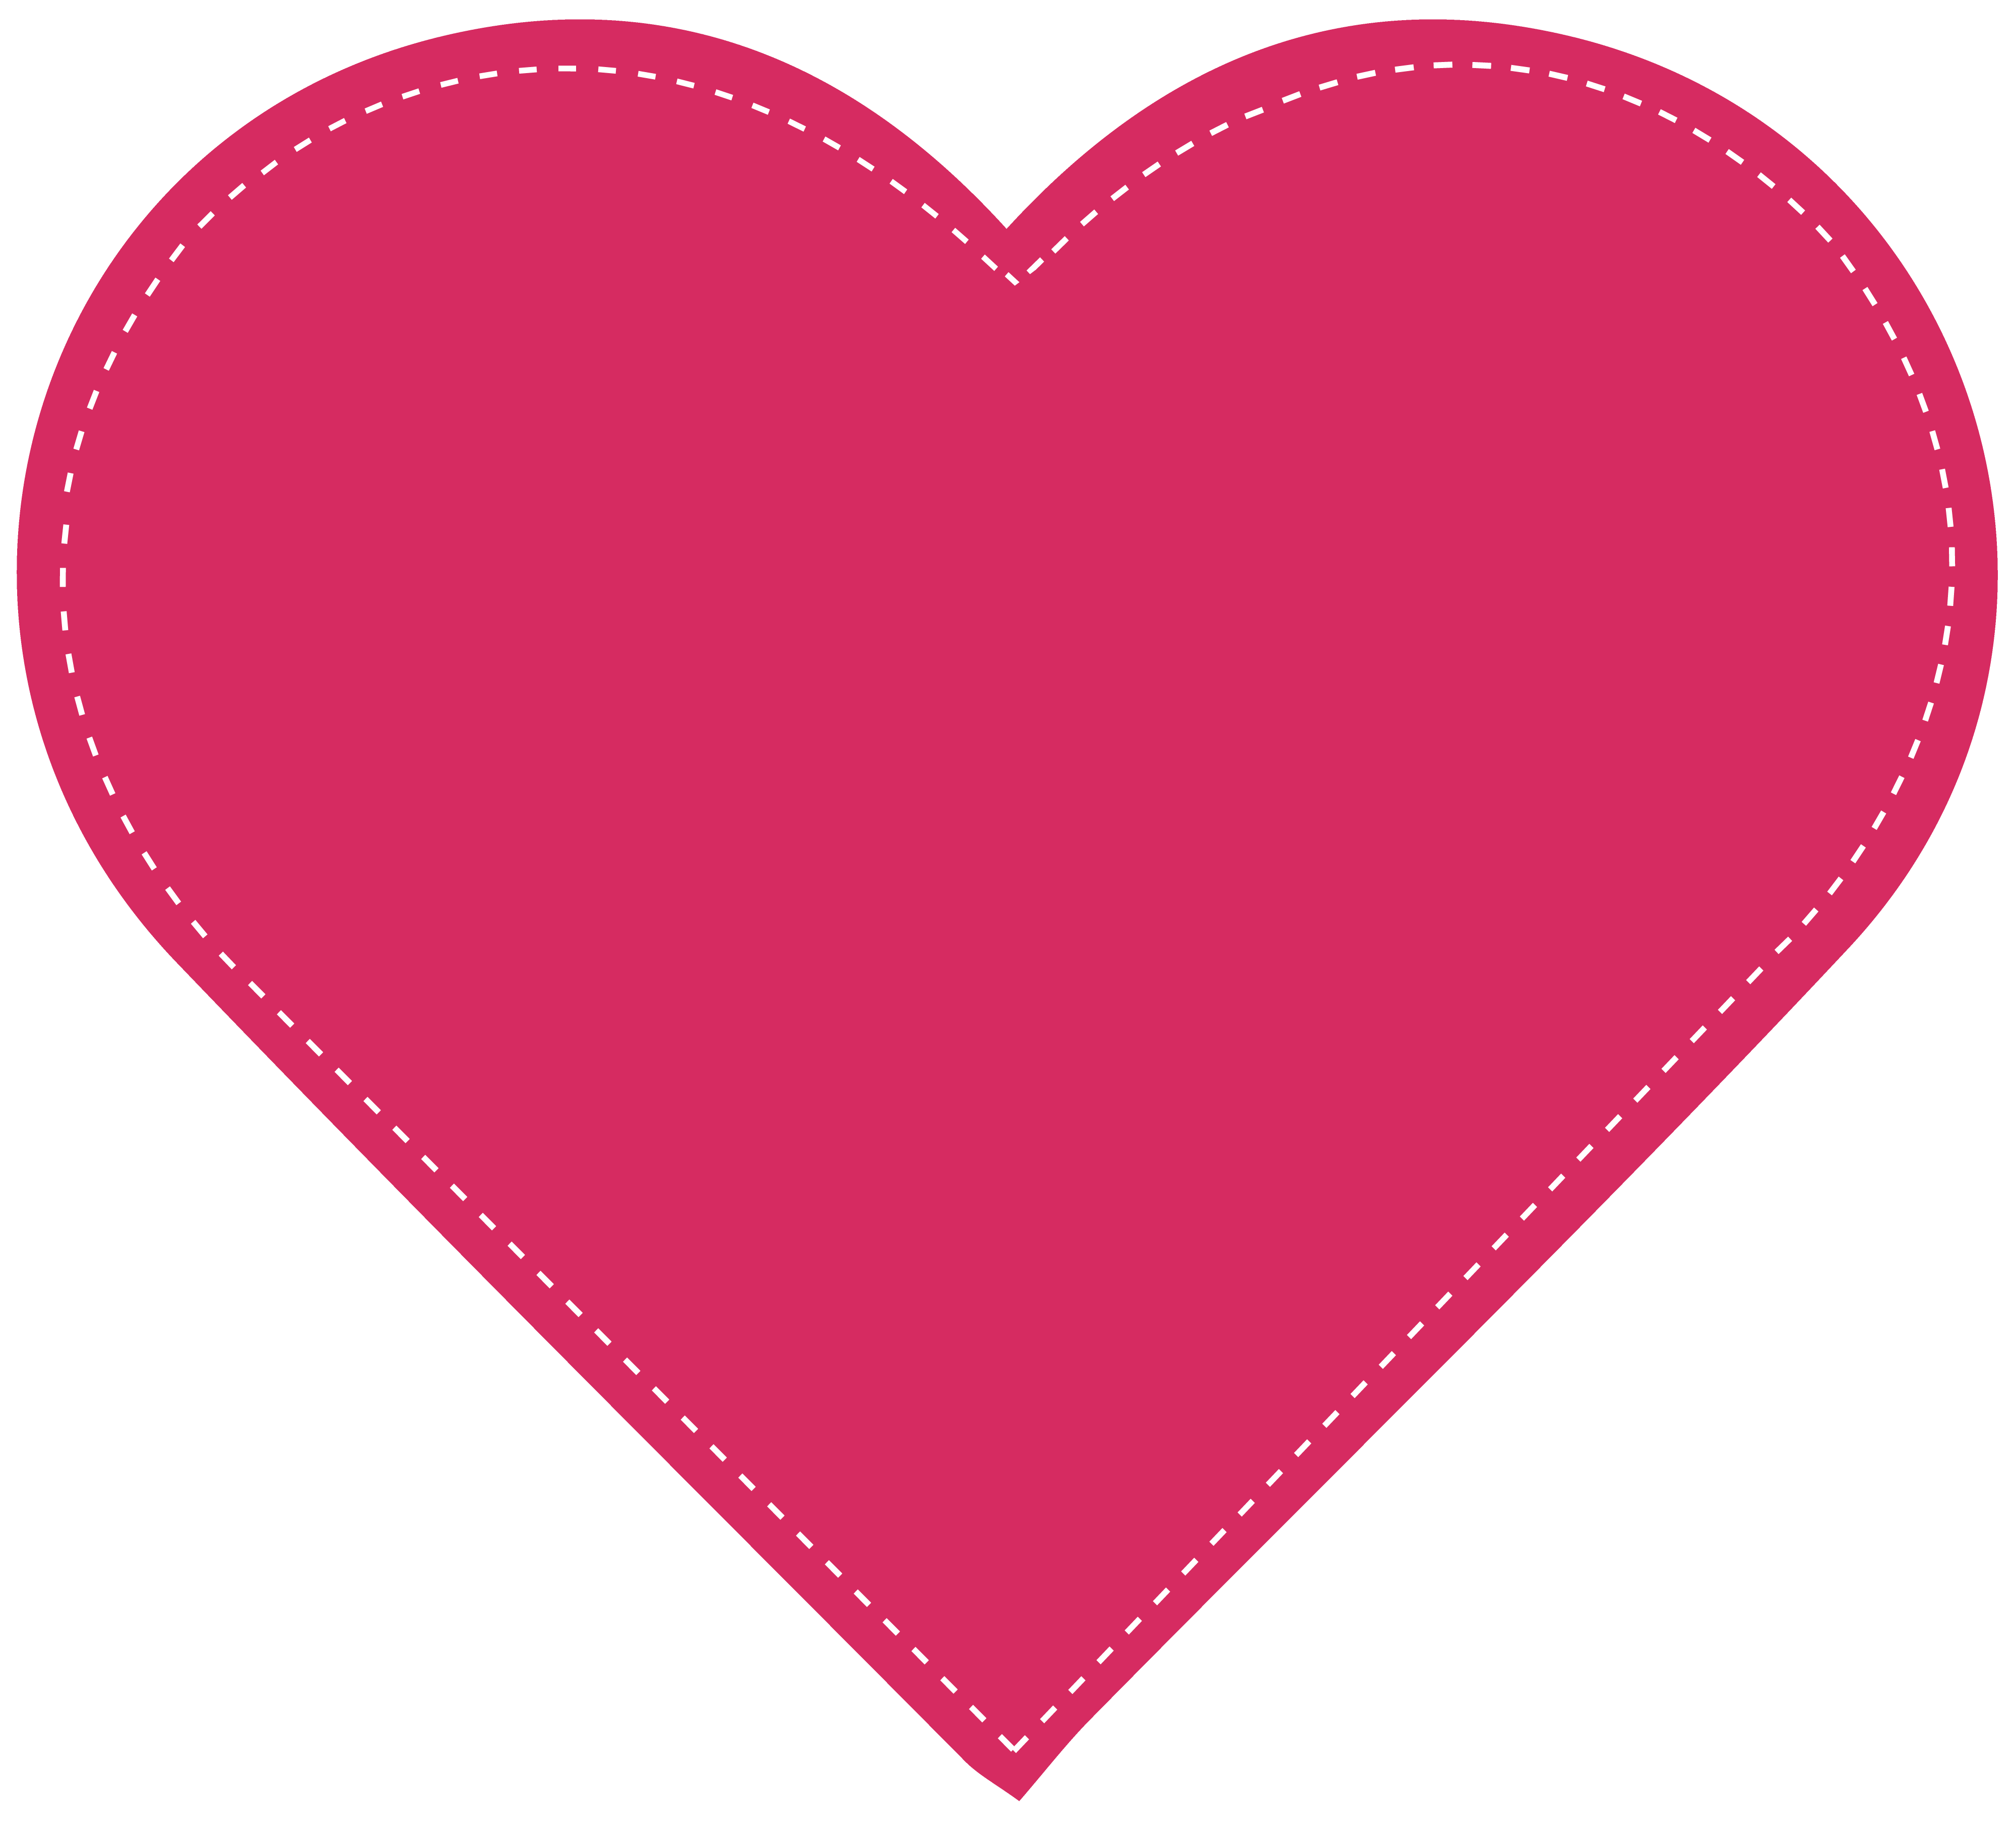 Heart png transparent pink. Image best stock photos